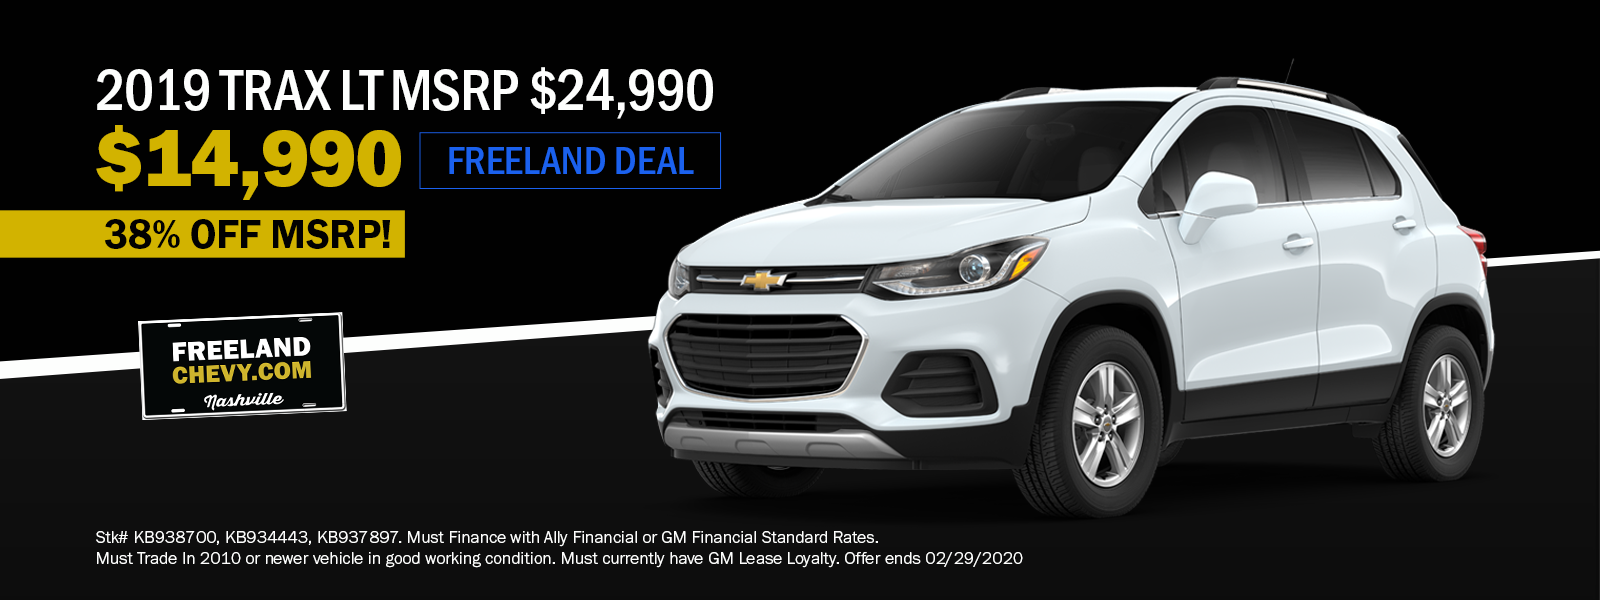 2019 Trax Special